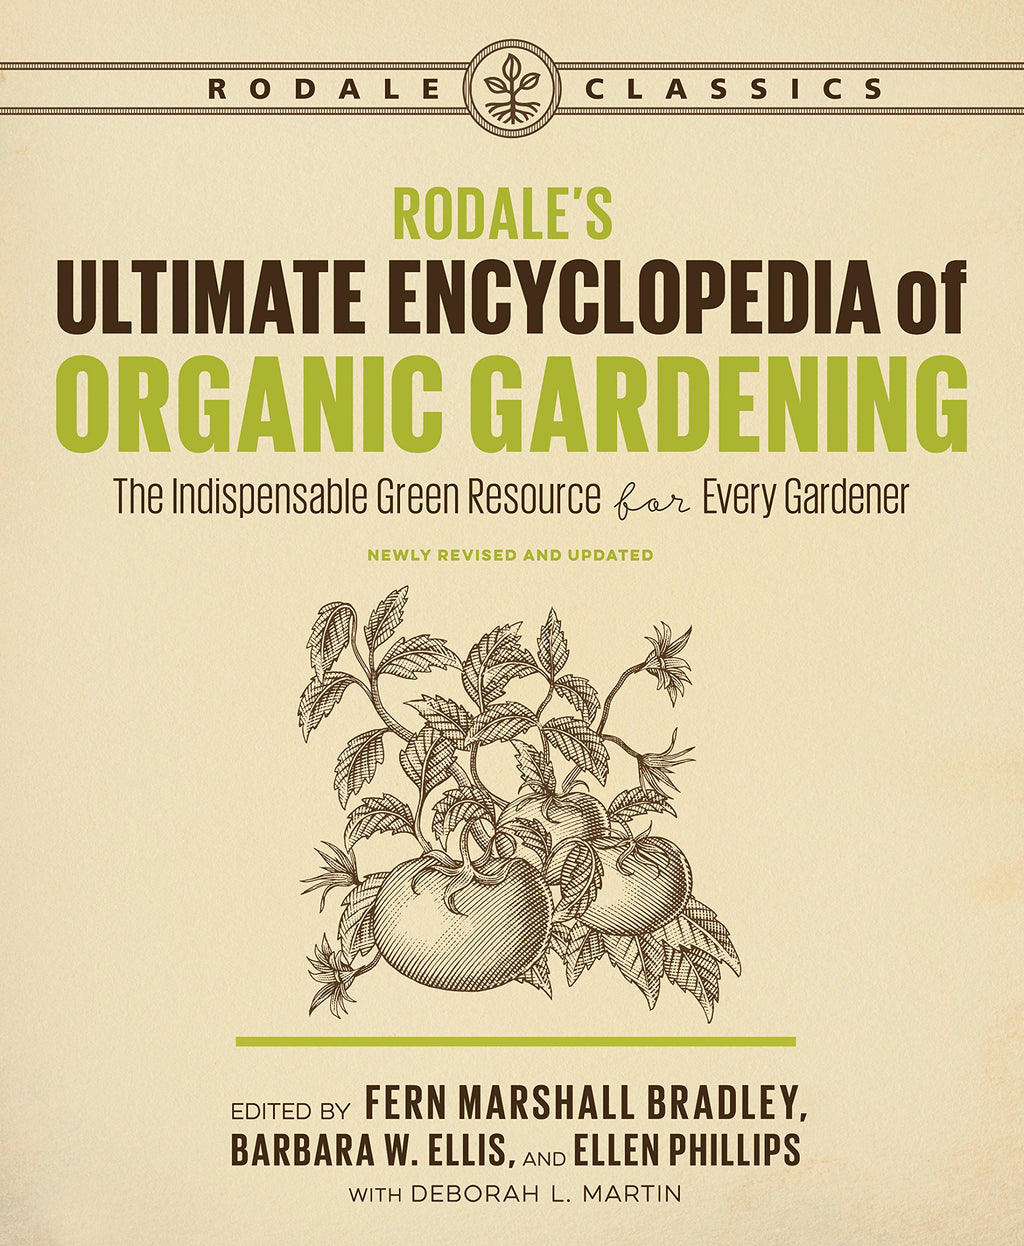 Rodale's Ultimate Encyclopedia of Organic Gardening by Deborah Martin